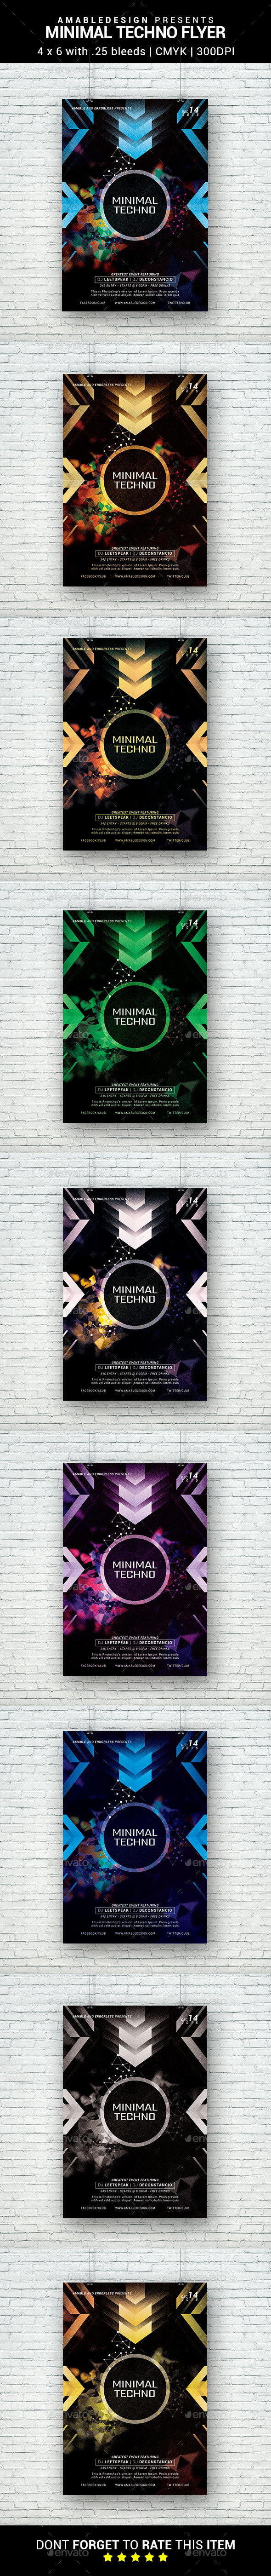 Minimal Techno Flyer - Clubs & Parties Events